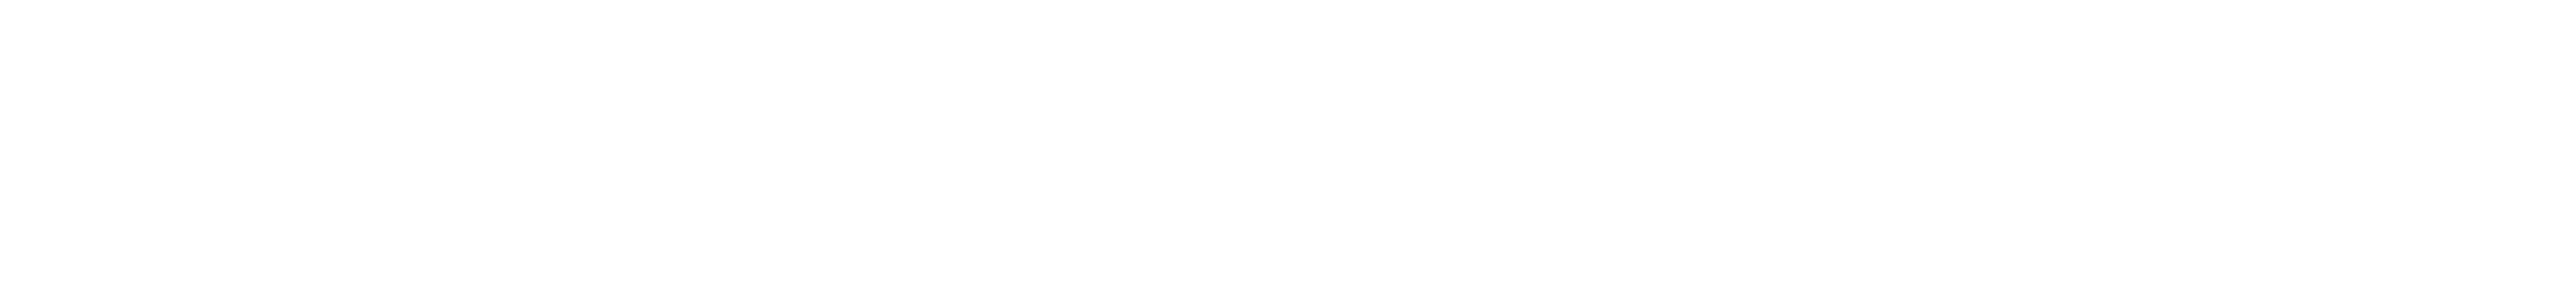 aaa white logo png